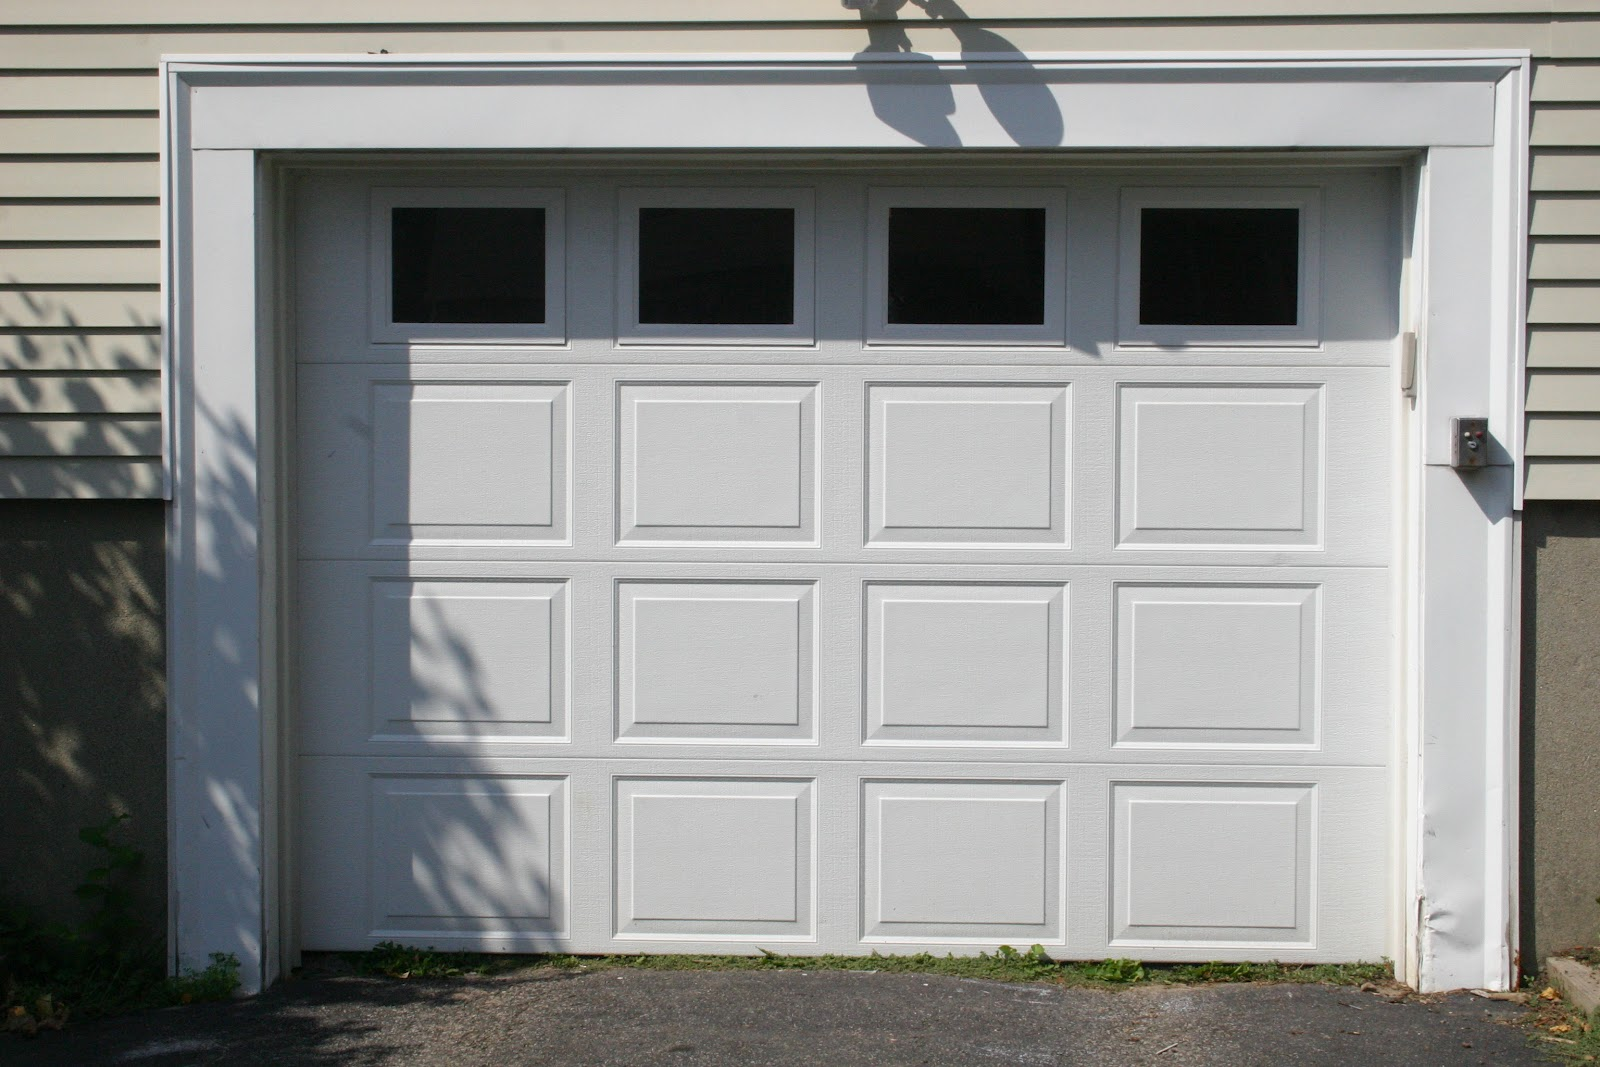 1067 #51593D  To Repairing Garage Door Windows Blog Garage Door Windows Garage Door picture/photo Garages Doors 36391600